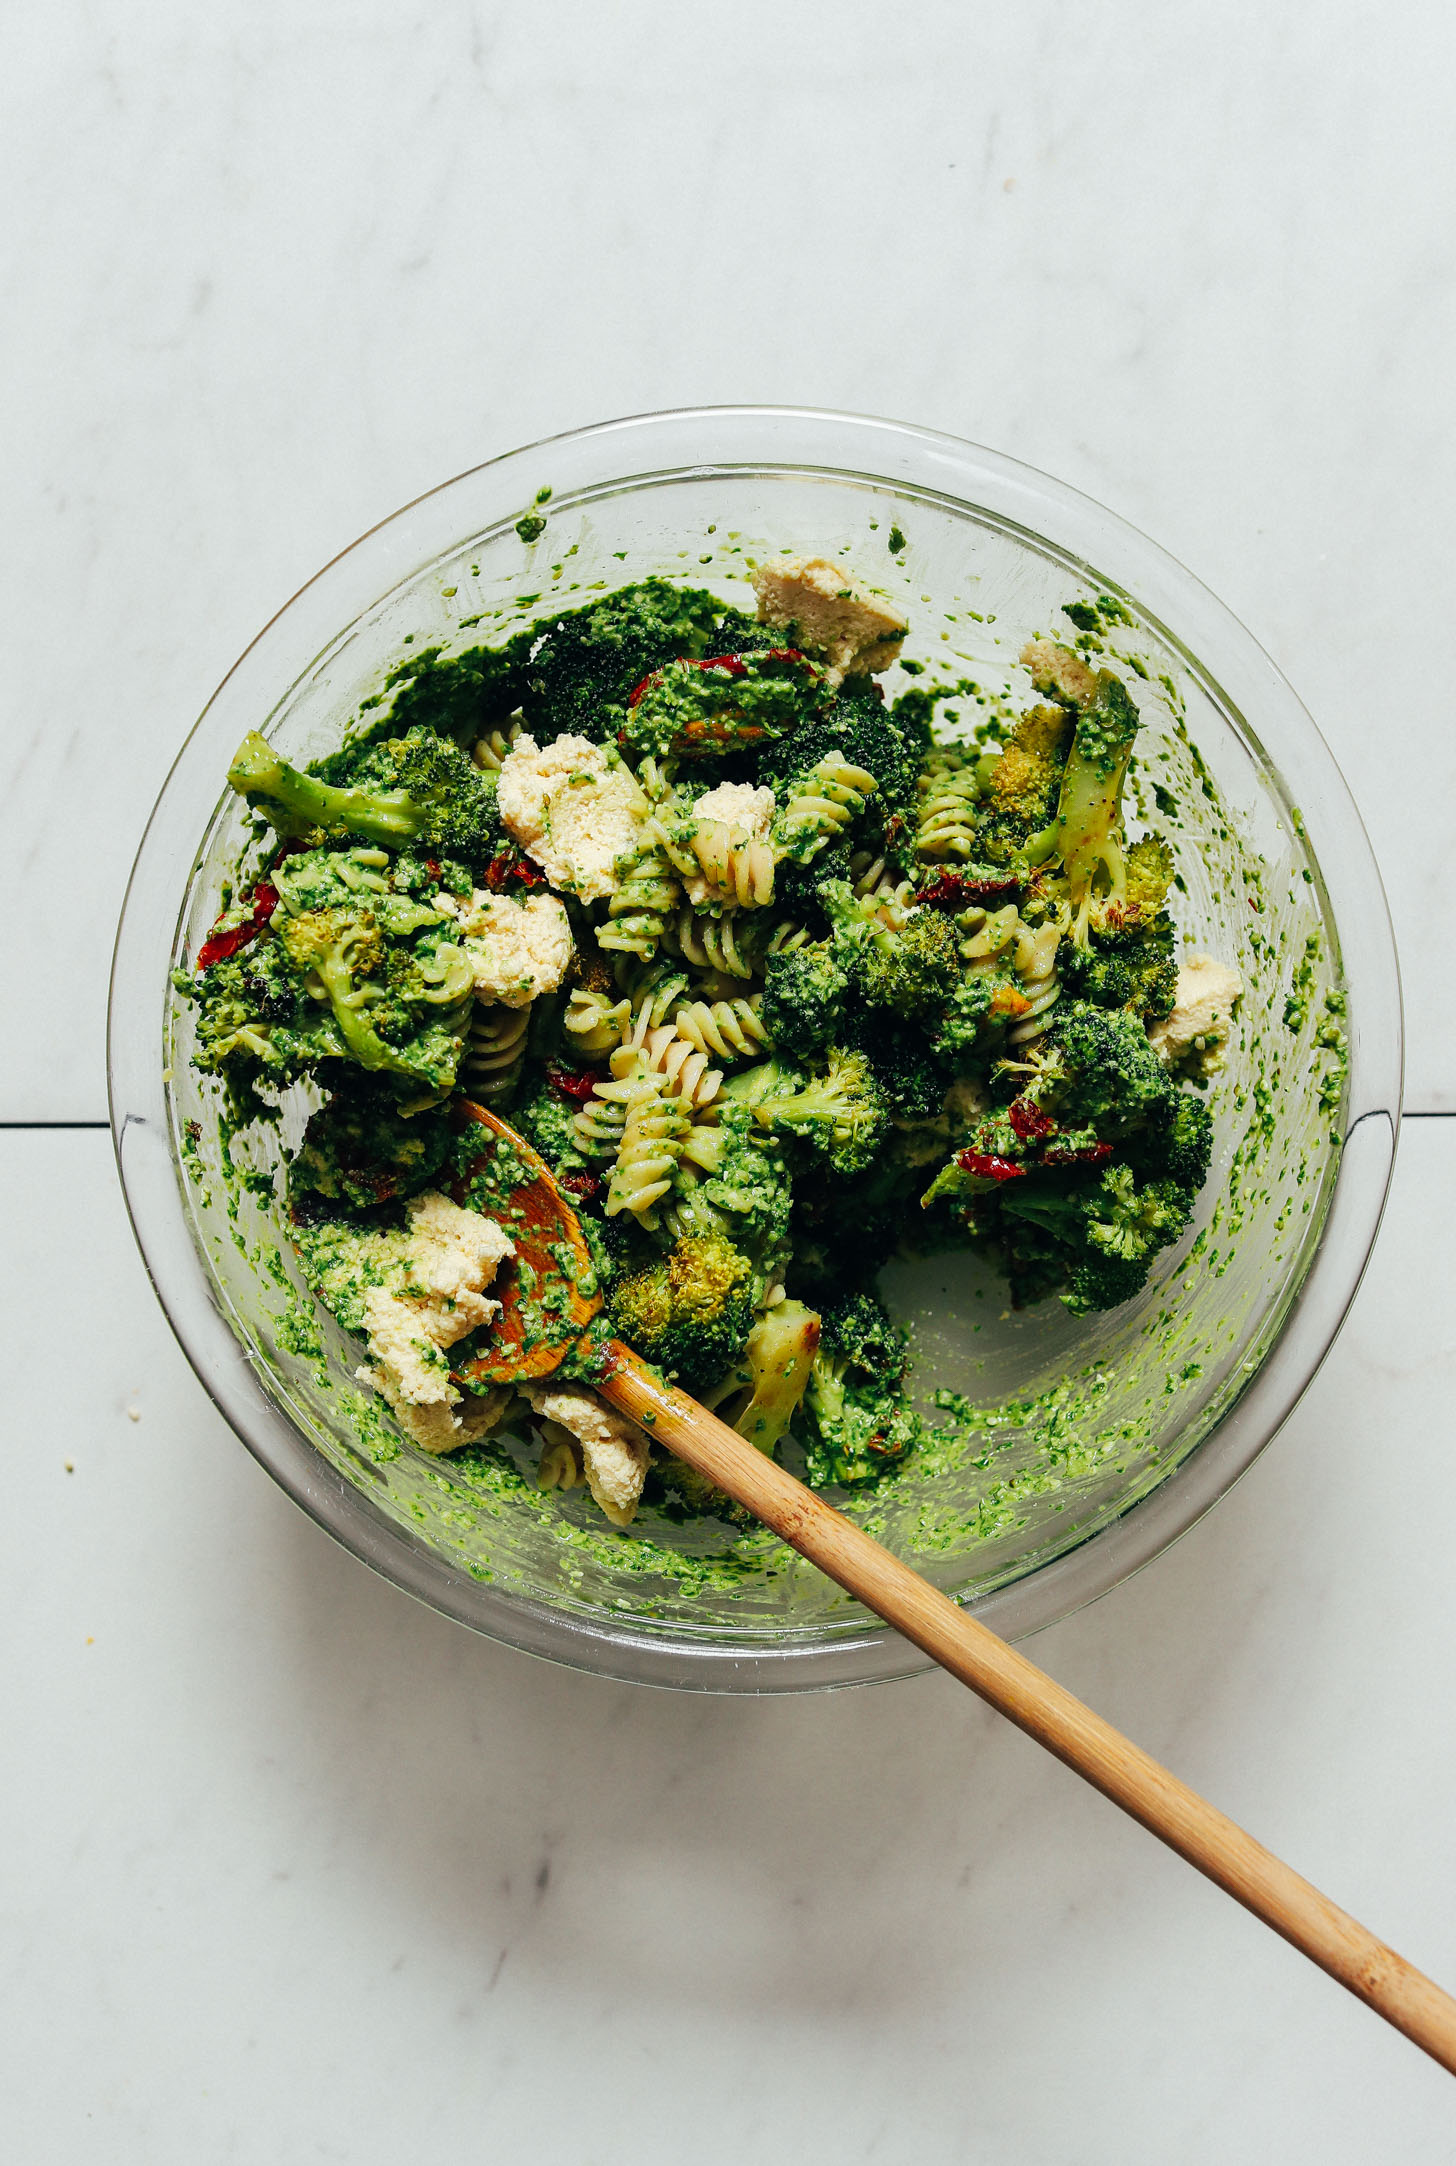 Bowl of Pesto Broccoli Pasta Salad with Sun-Dried Tomatoes and Vegan Macadamia Nut Cheese